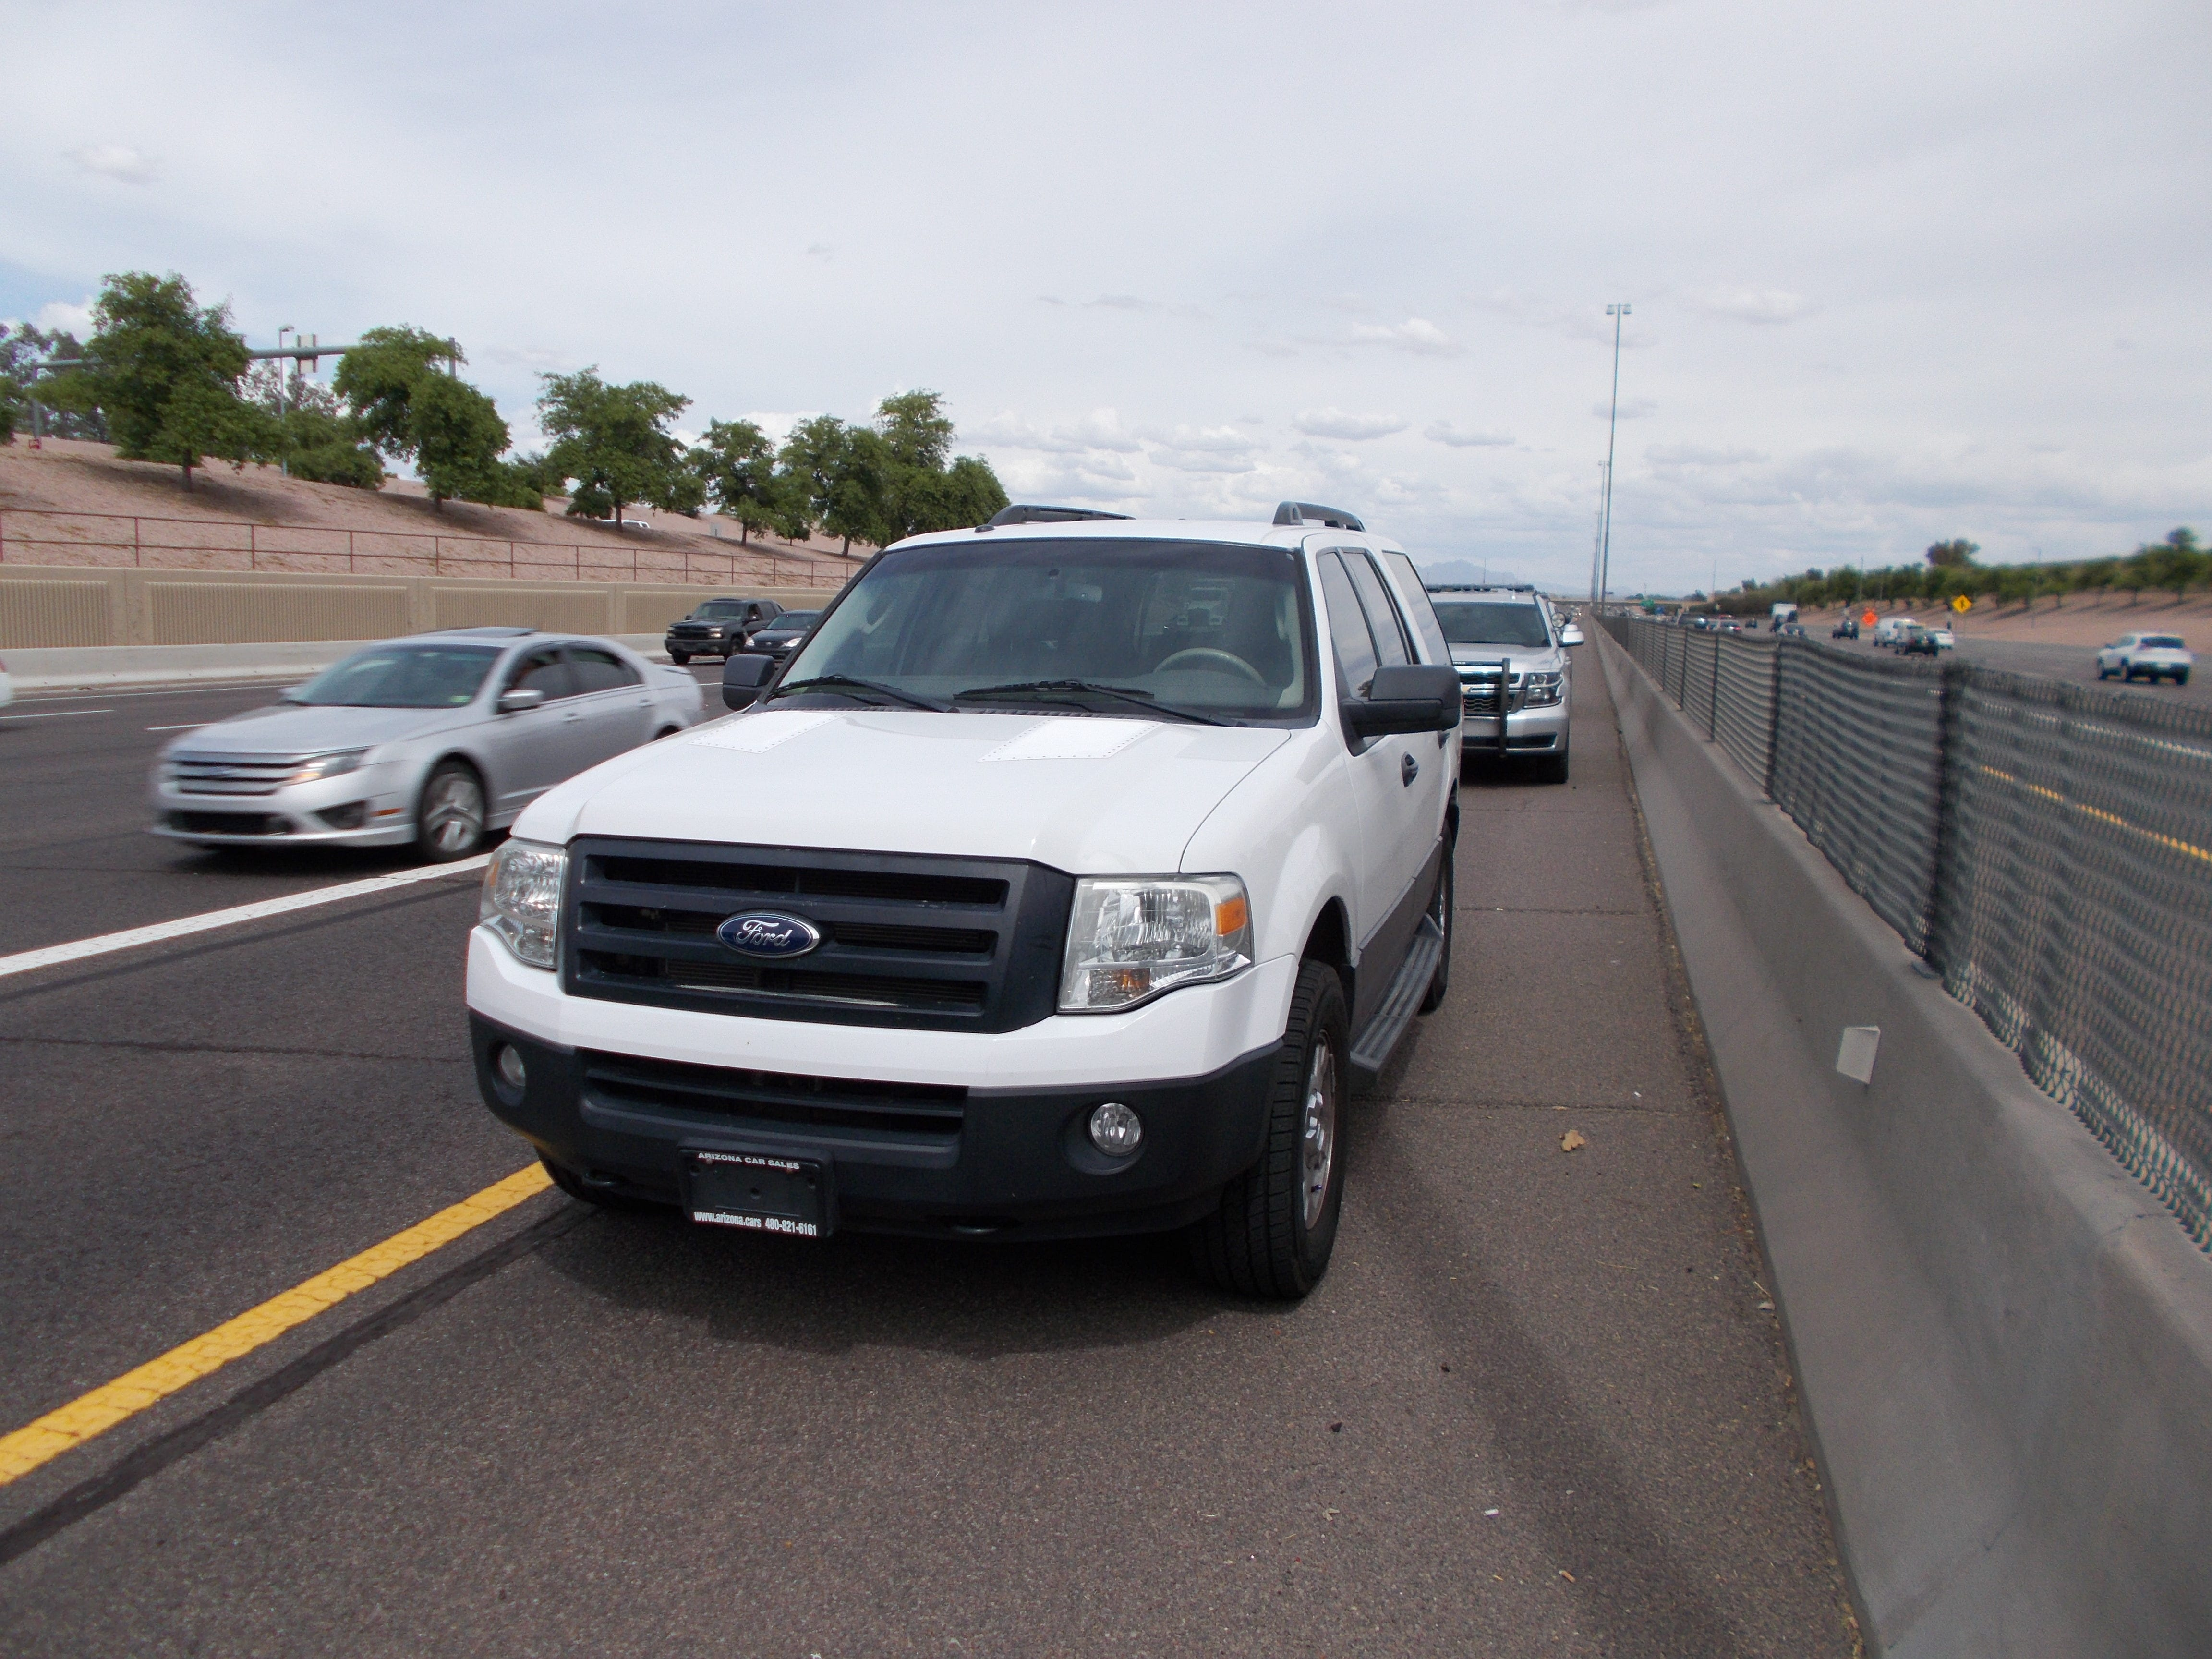 Arizona DPS arrested a man on suspicion of impersonating a police officer when making a traffic stop on U.S. 60 near Lindsay Road.